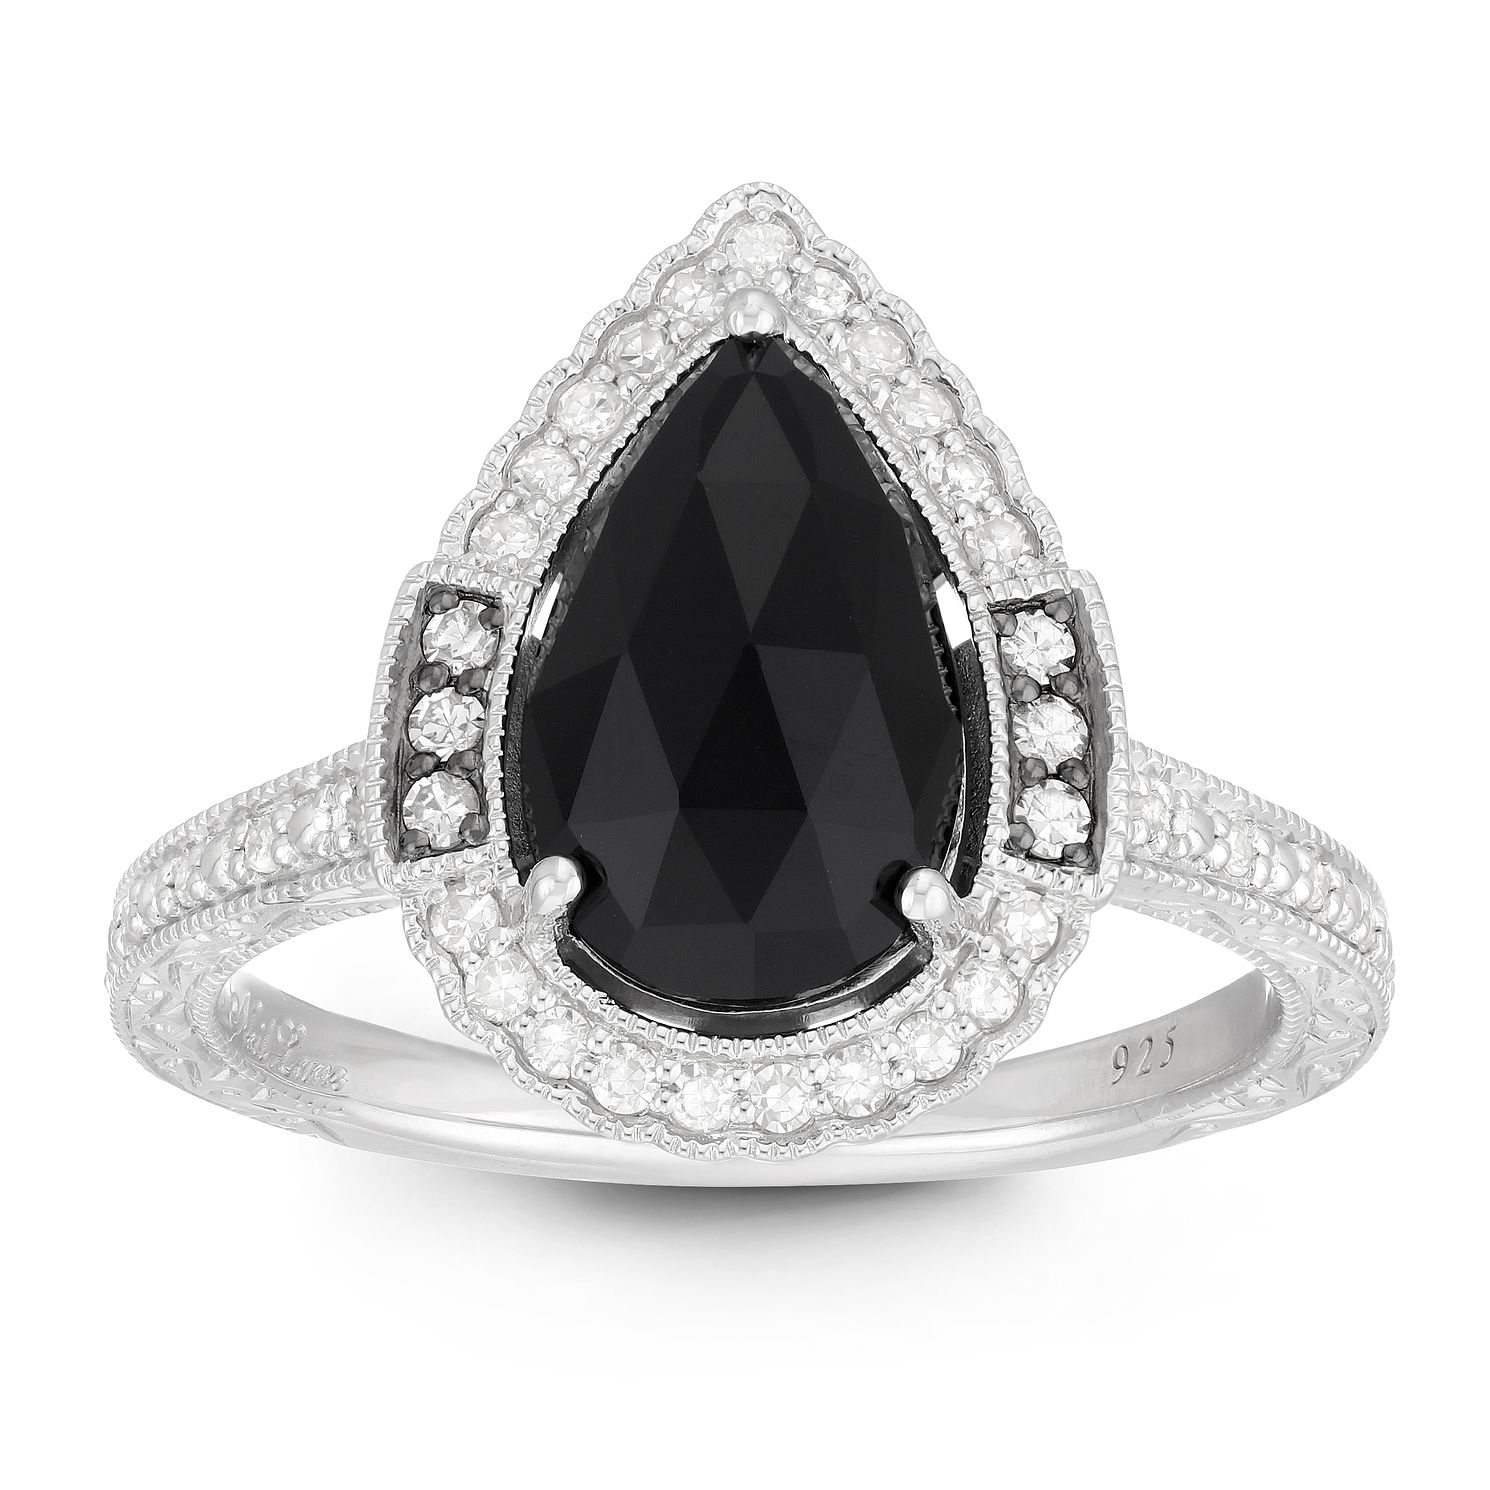 Neil Lane Designs Silver 1/5ct Diamond & Onyx Pear Ring - Product number 2787814